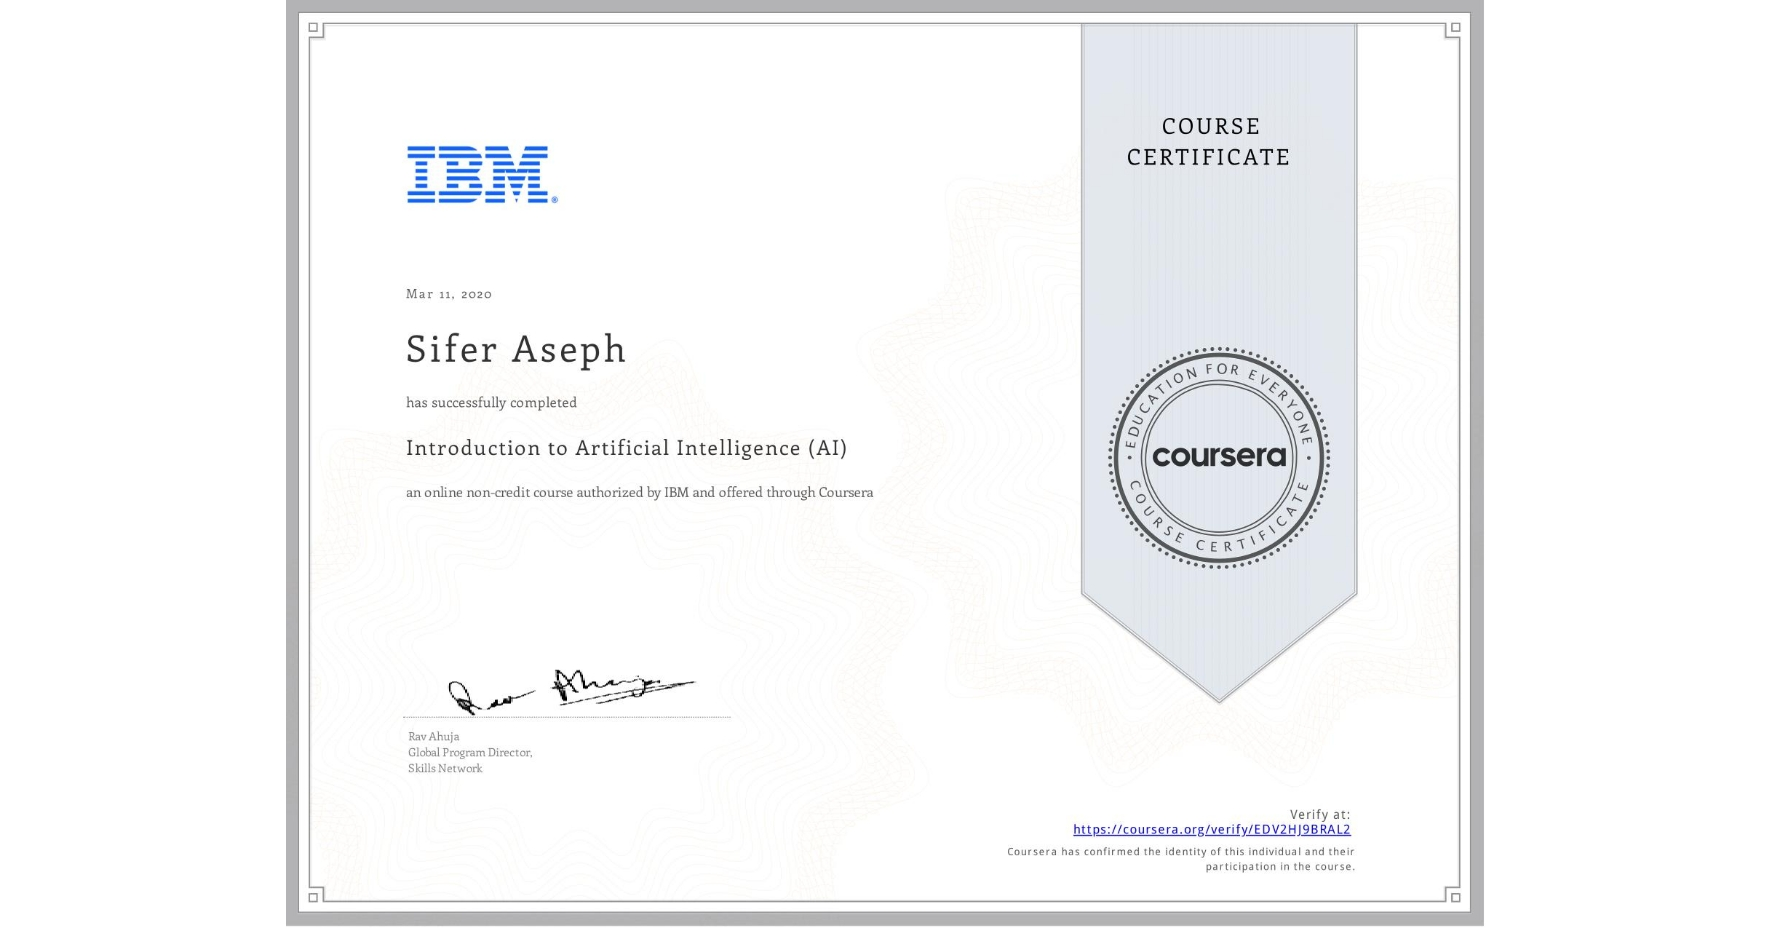 View certificate for Sifer Aseph, Introduction to Artificial Intelligence (AI), an online non-credit course authorized by IBM and offered through Coursera